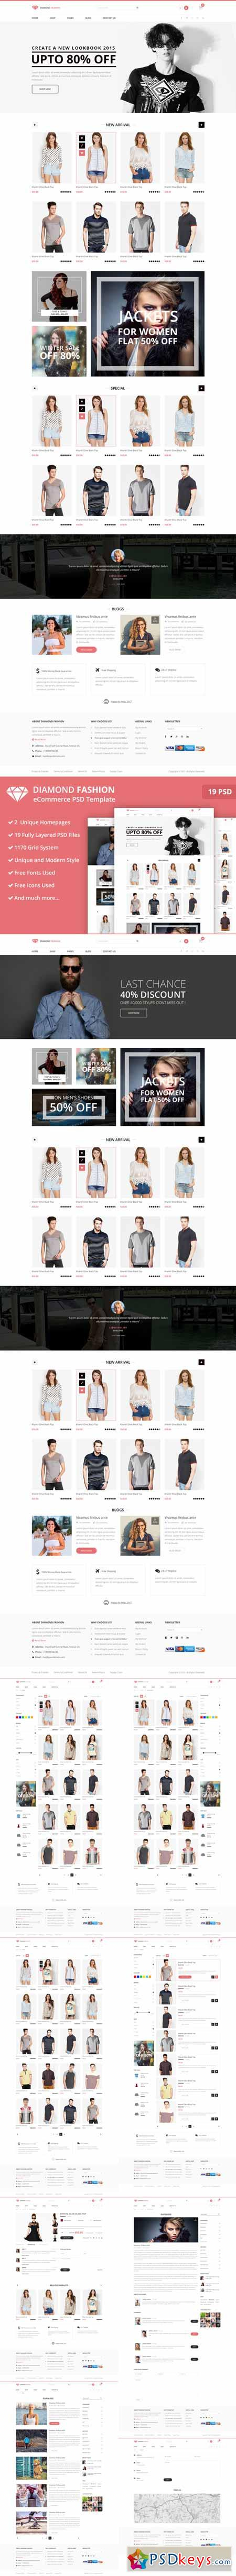 Fashion- eCommerce PSD Template 382395